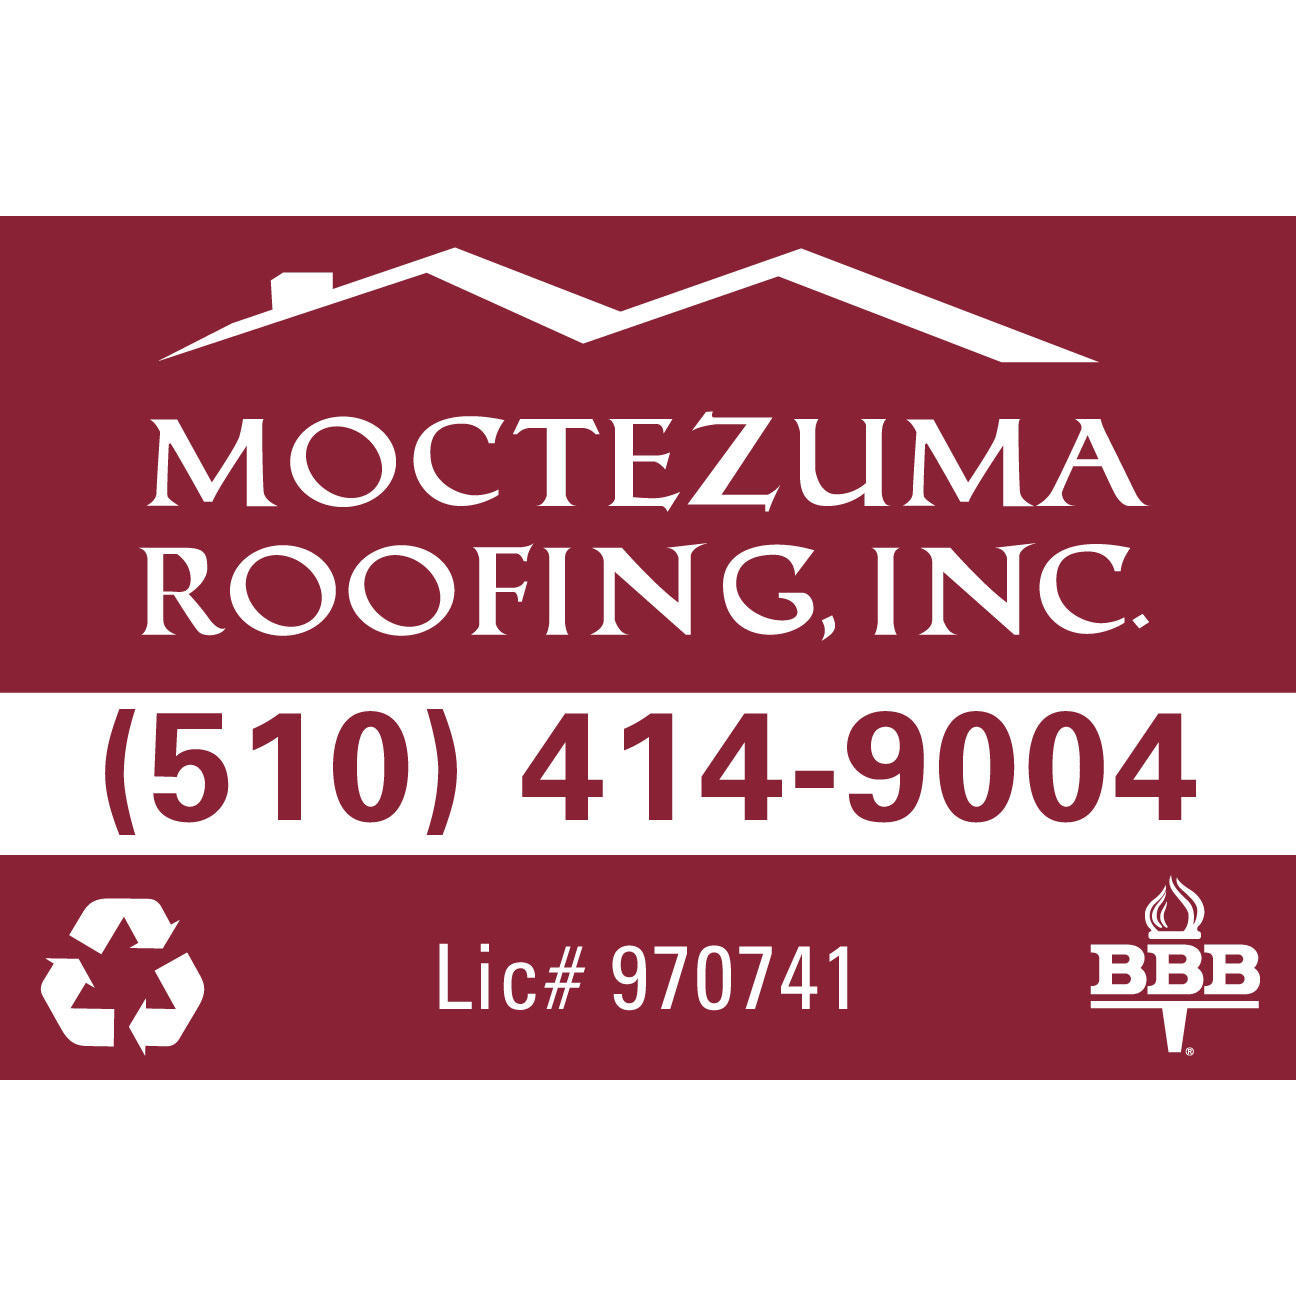 Moctezuma Roofing, Inc. - Oakland, CA 94605 - (510)414-9004 | ShowMeLocal.com